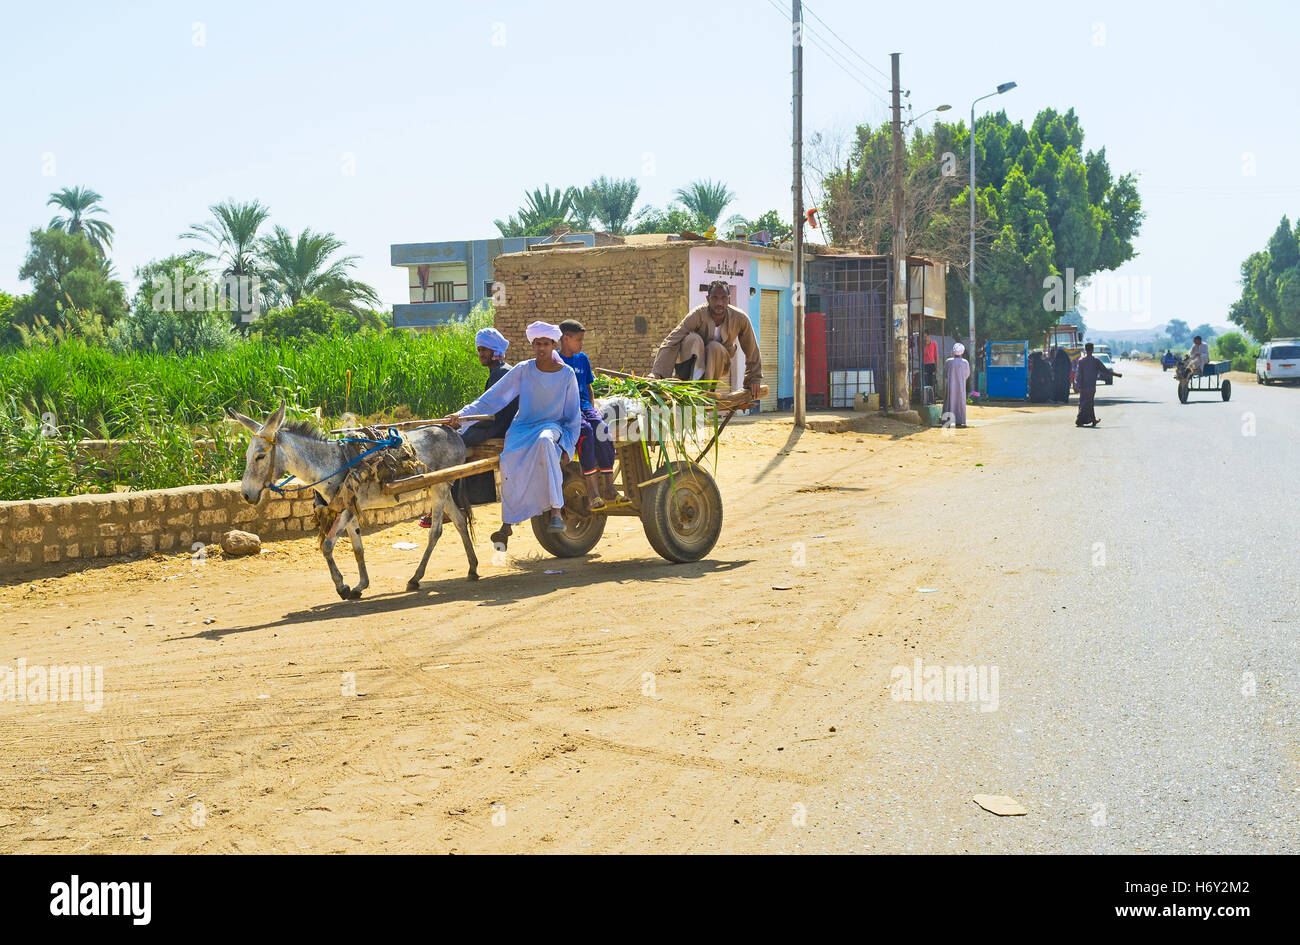 The Upper Egypt is poor agricultural region, so the local farmers often use the donkey carts for transportation - Stock Image